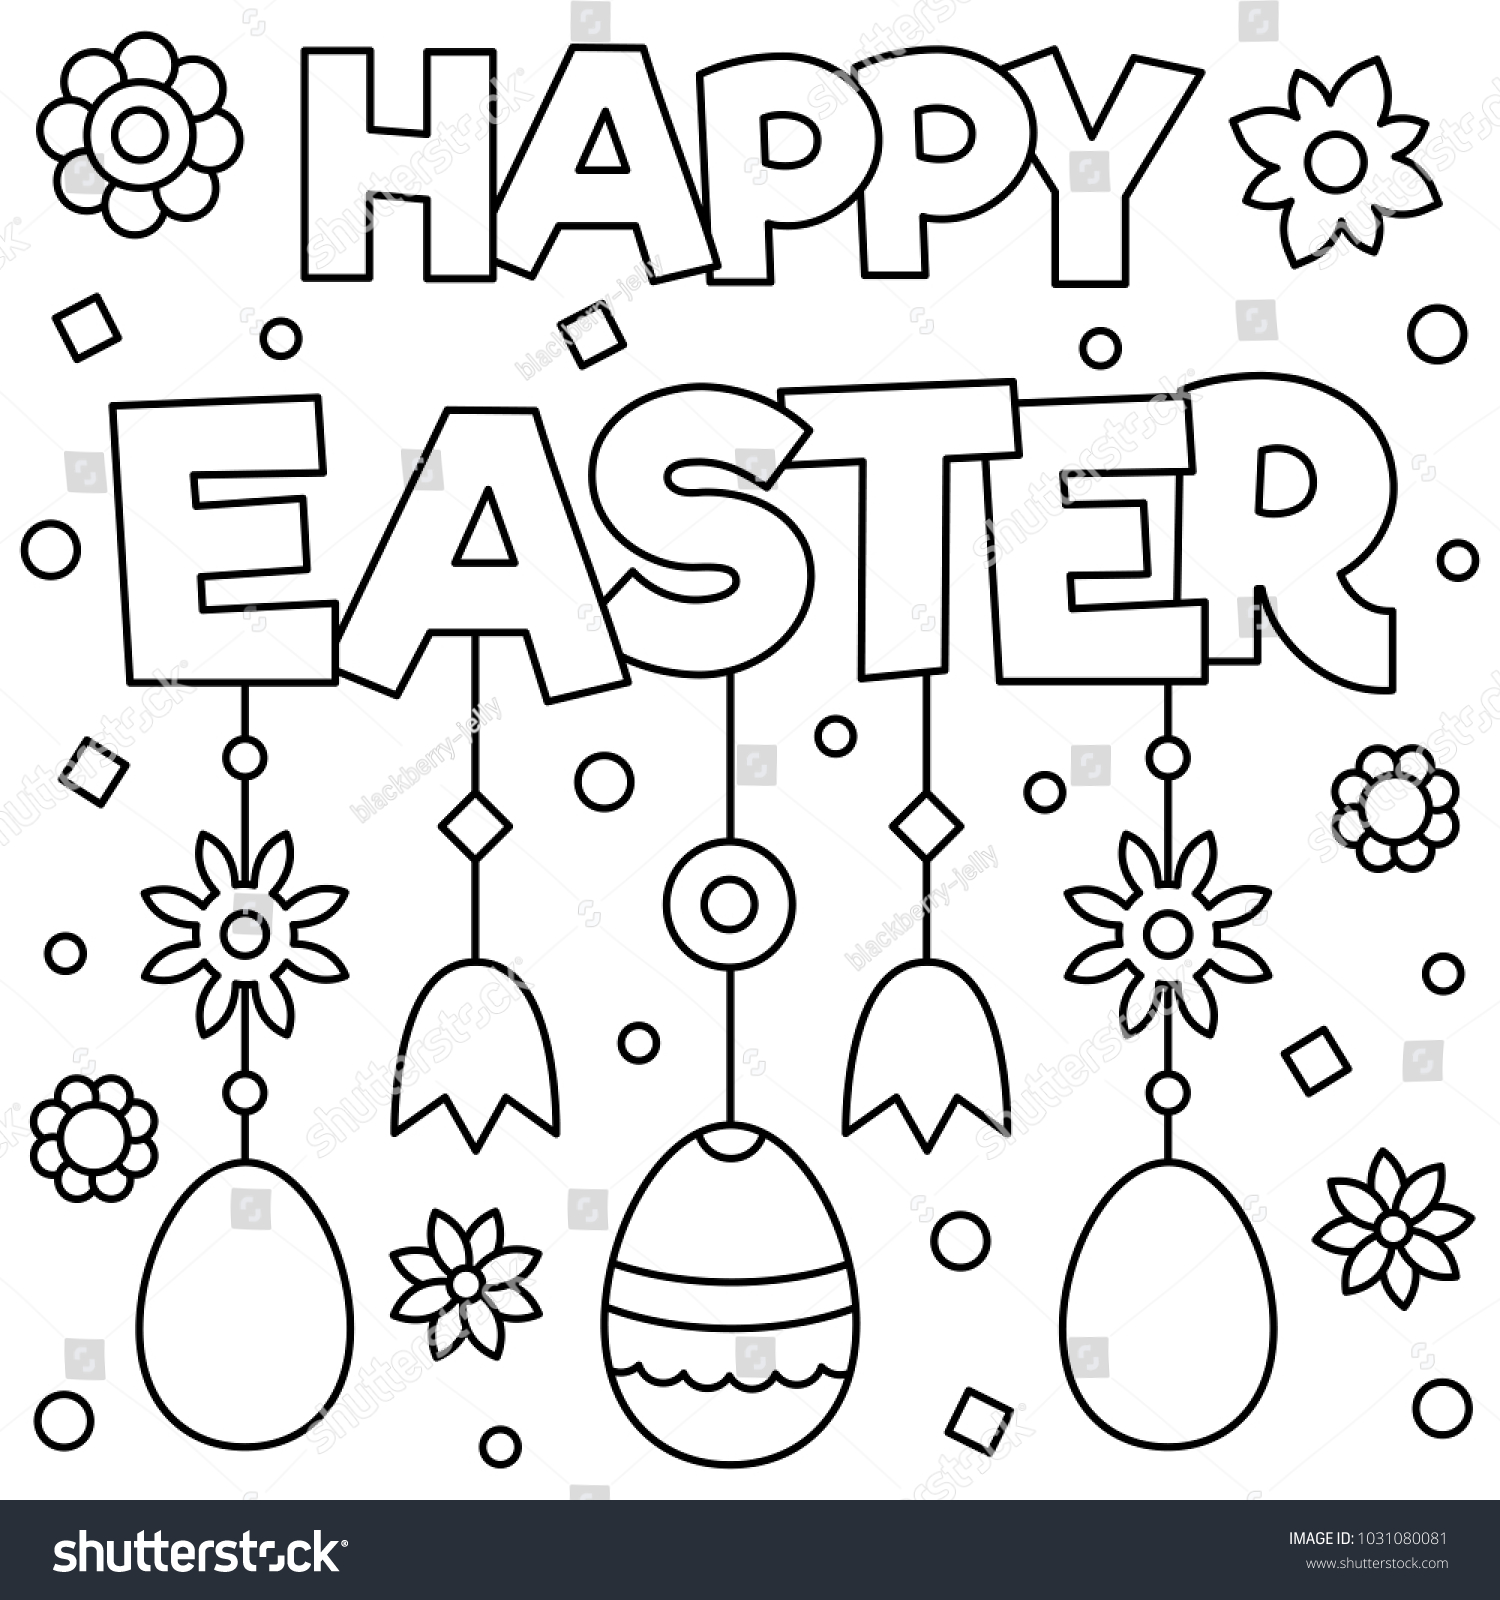 Happy Easter Coloring Page Vector Illustration Stock Vector (Royalty ...